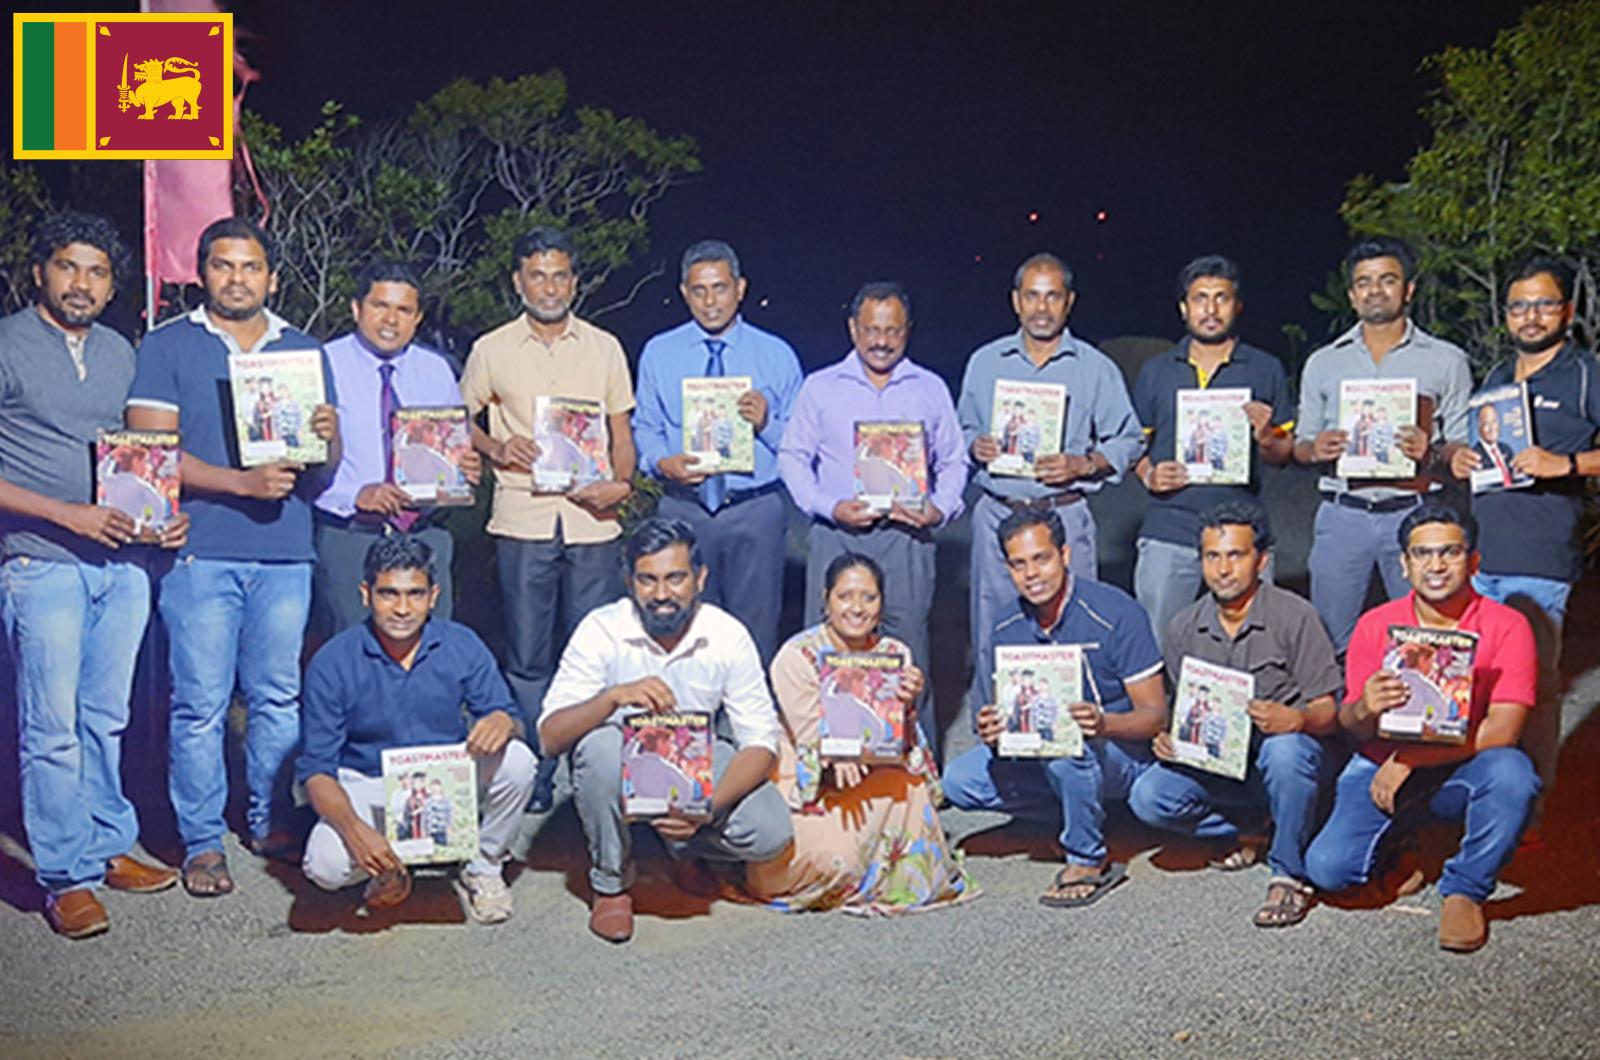 People standing outdoors at night holding Toastmaster magazines